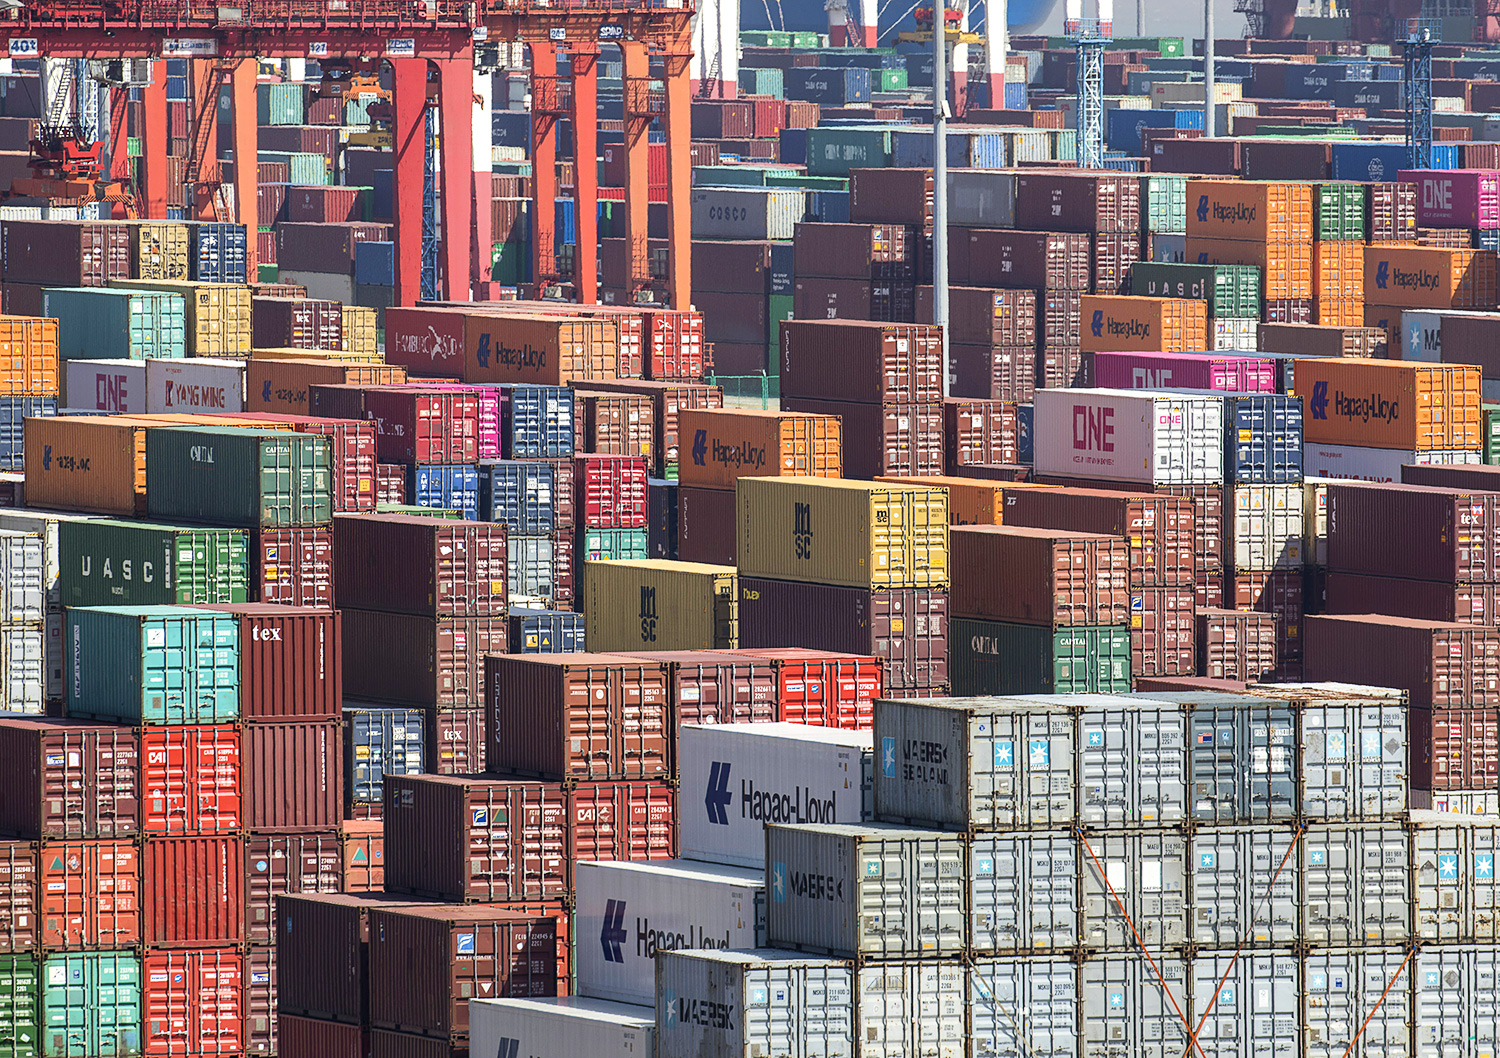 Containers sit stacked at the Yangshan Deep Water Port in Shanghai, China, on Tuesday, July 10, 2018.